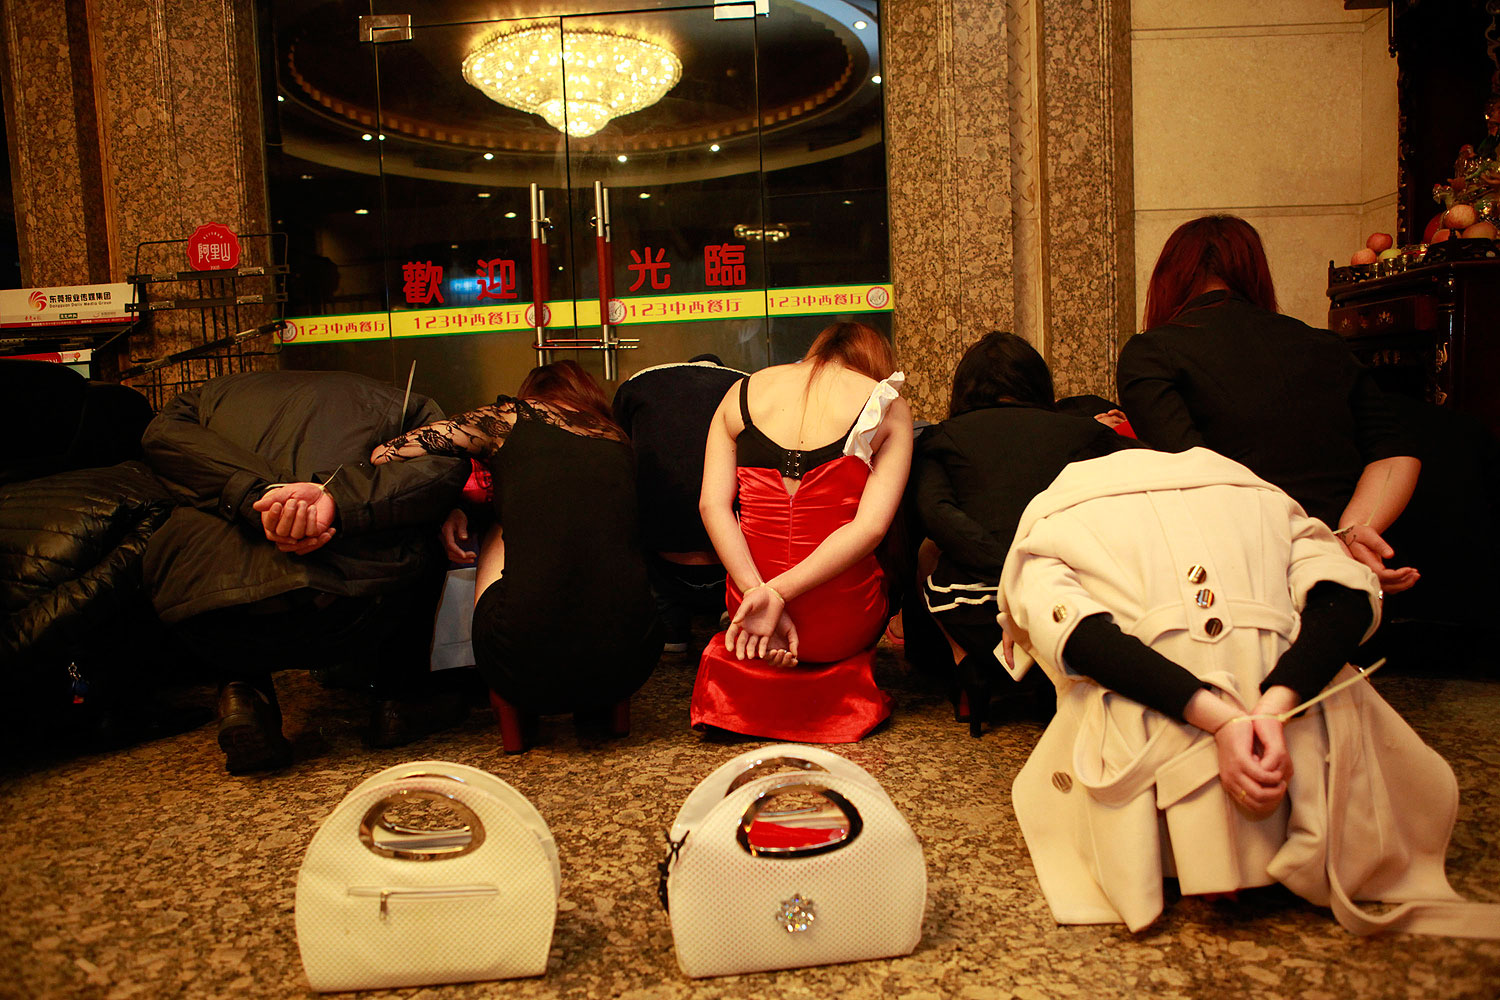 This picture taken late on Feb. 9, 2014 shows alleged sex workers and clients detained by Chinese police after a raid on an entertainment center in Dongguan, southern China's Guangdong province